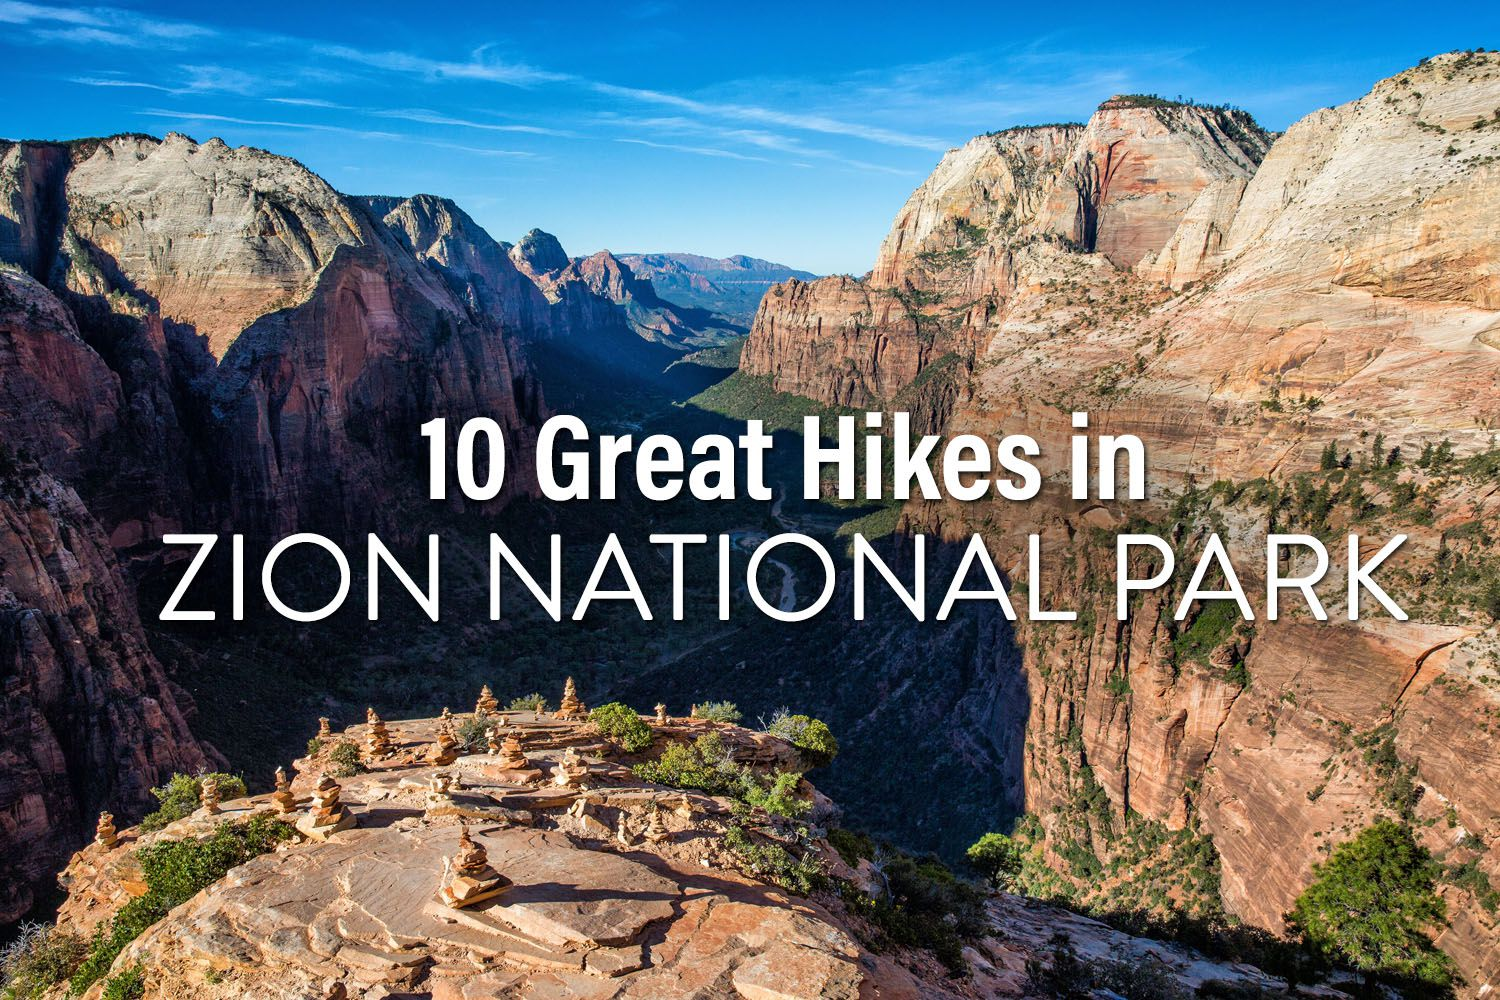 Hikes in Zion